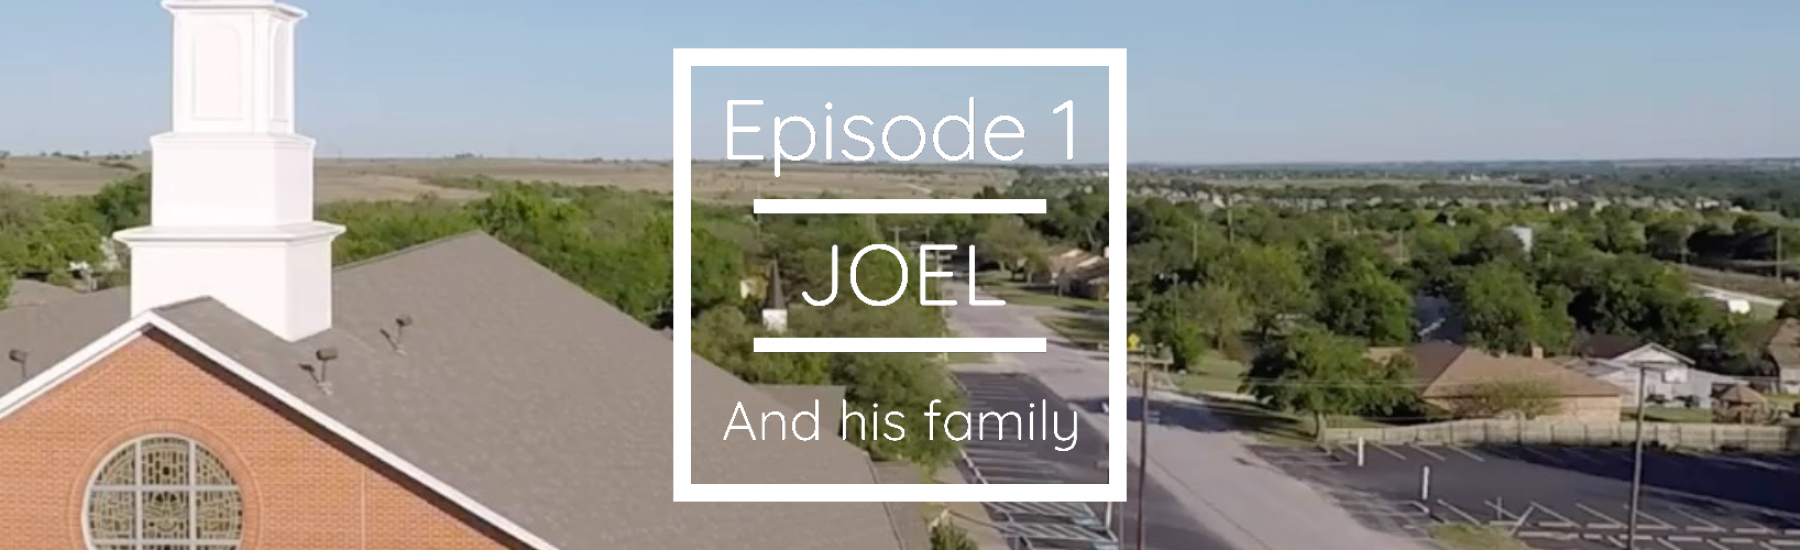 Episode 1 - Joel and his Family